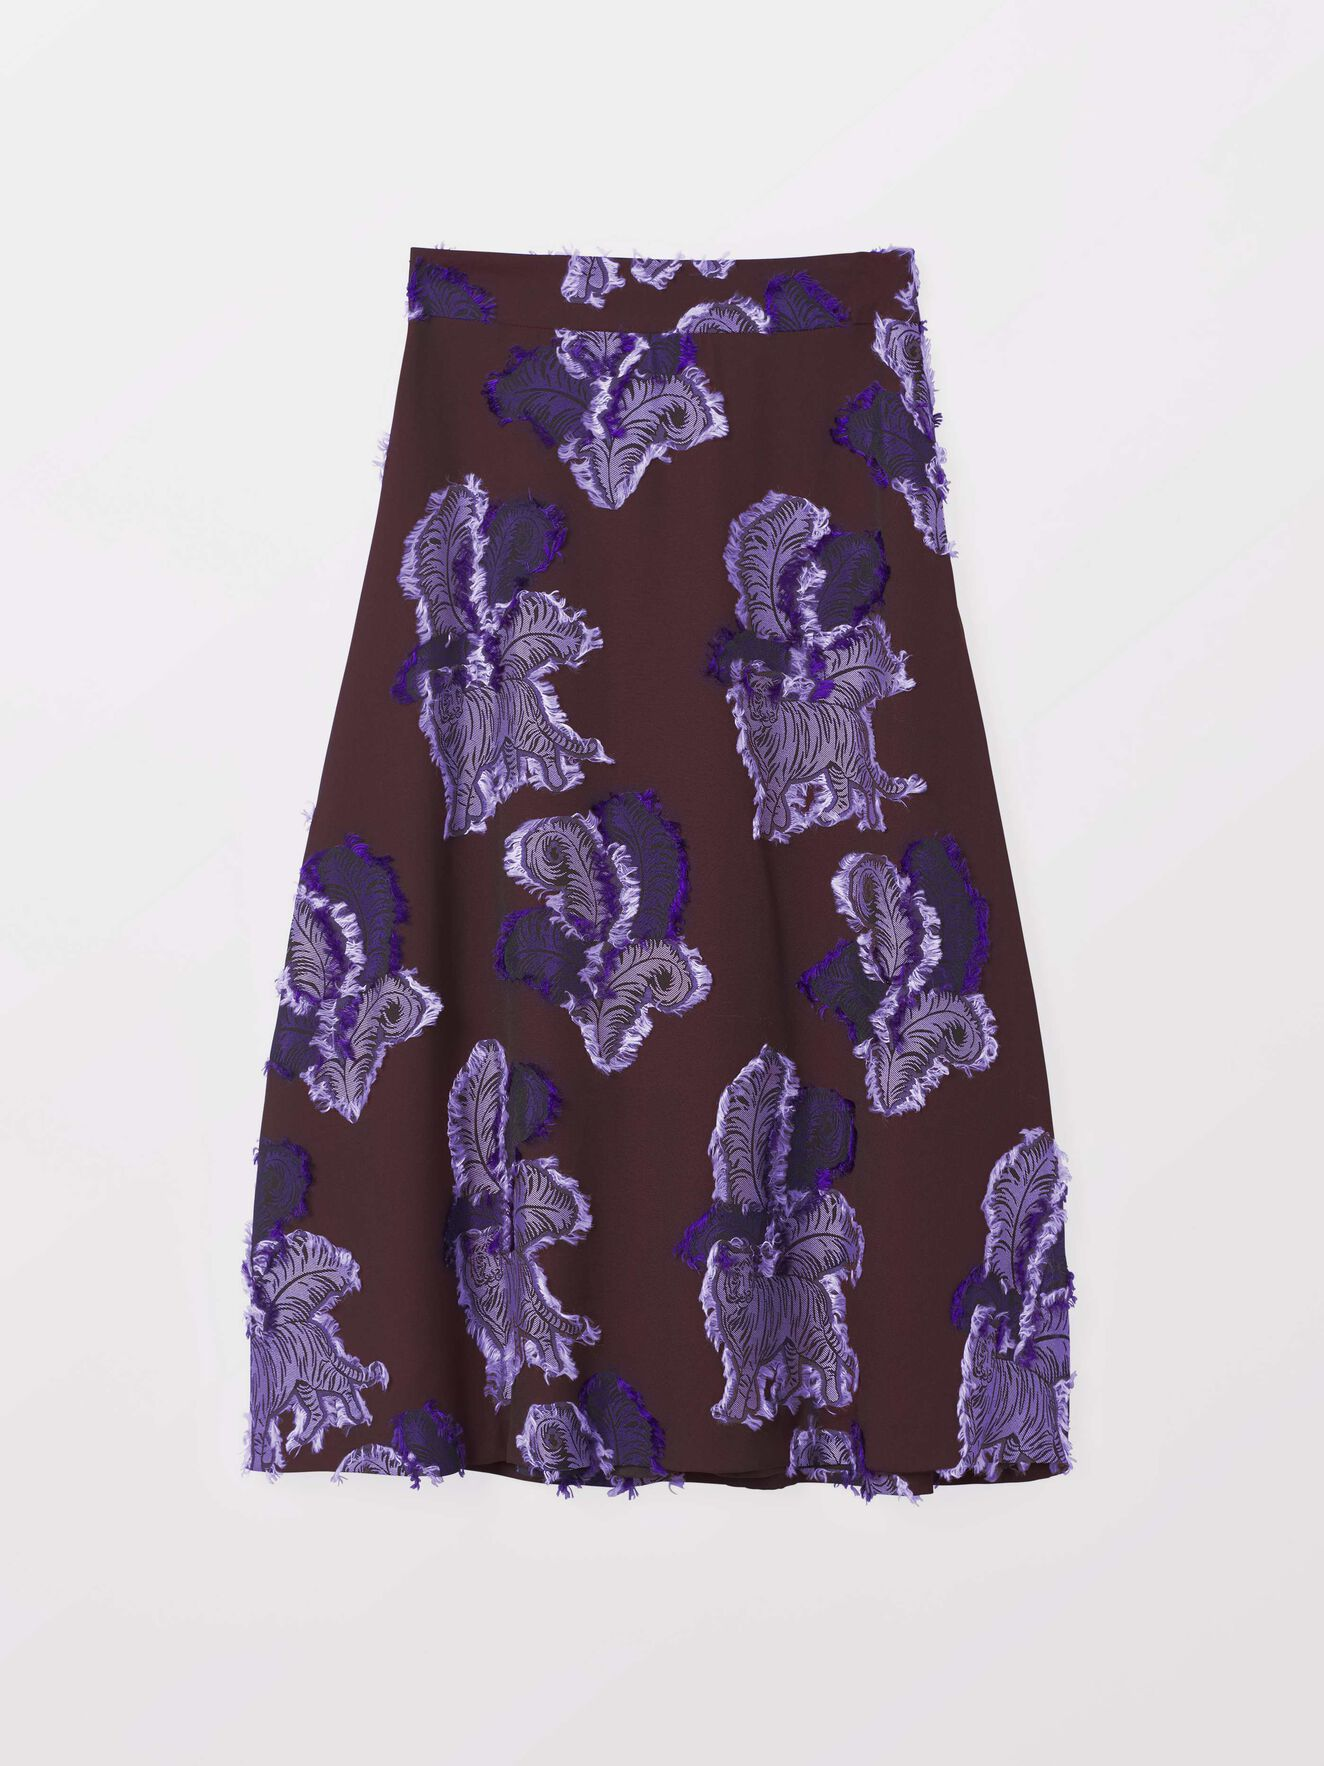 Mable 2 P Skirt in ARTWORK from Tiger of Sweden